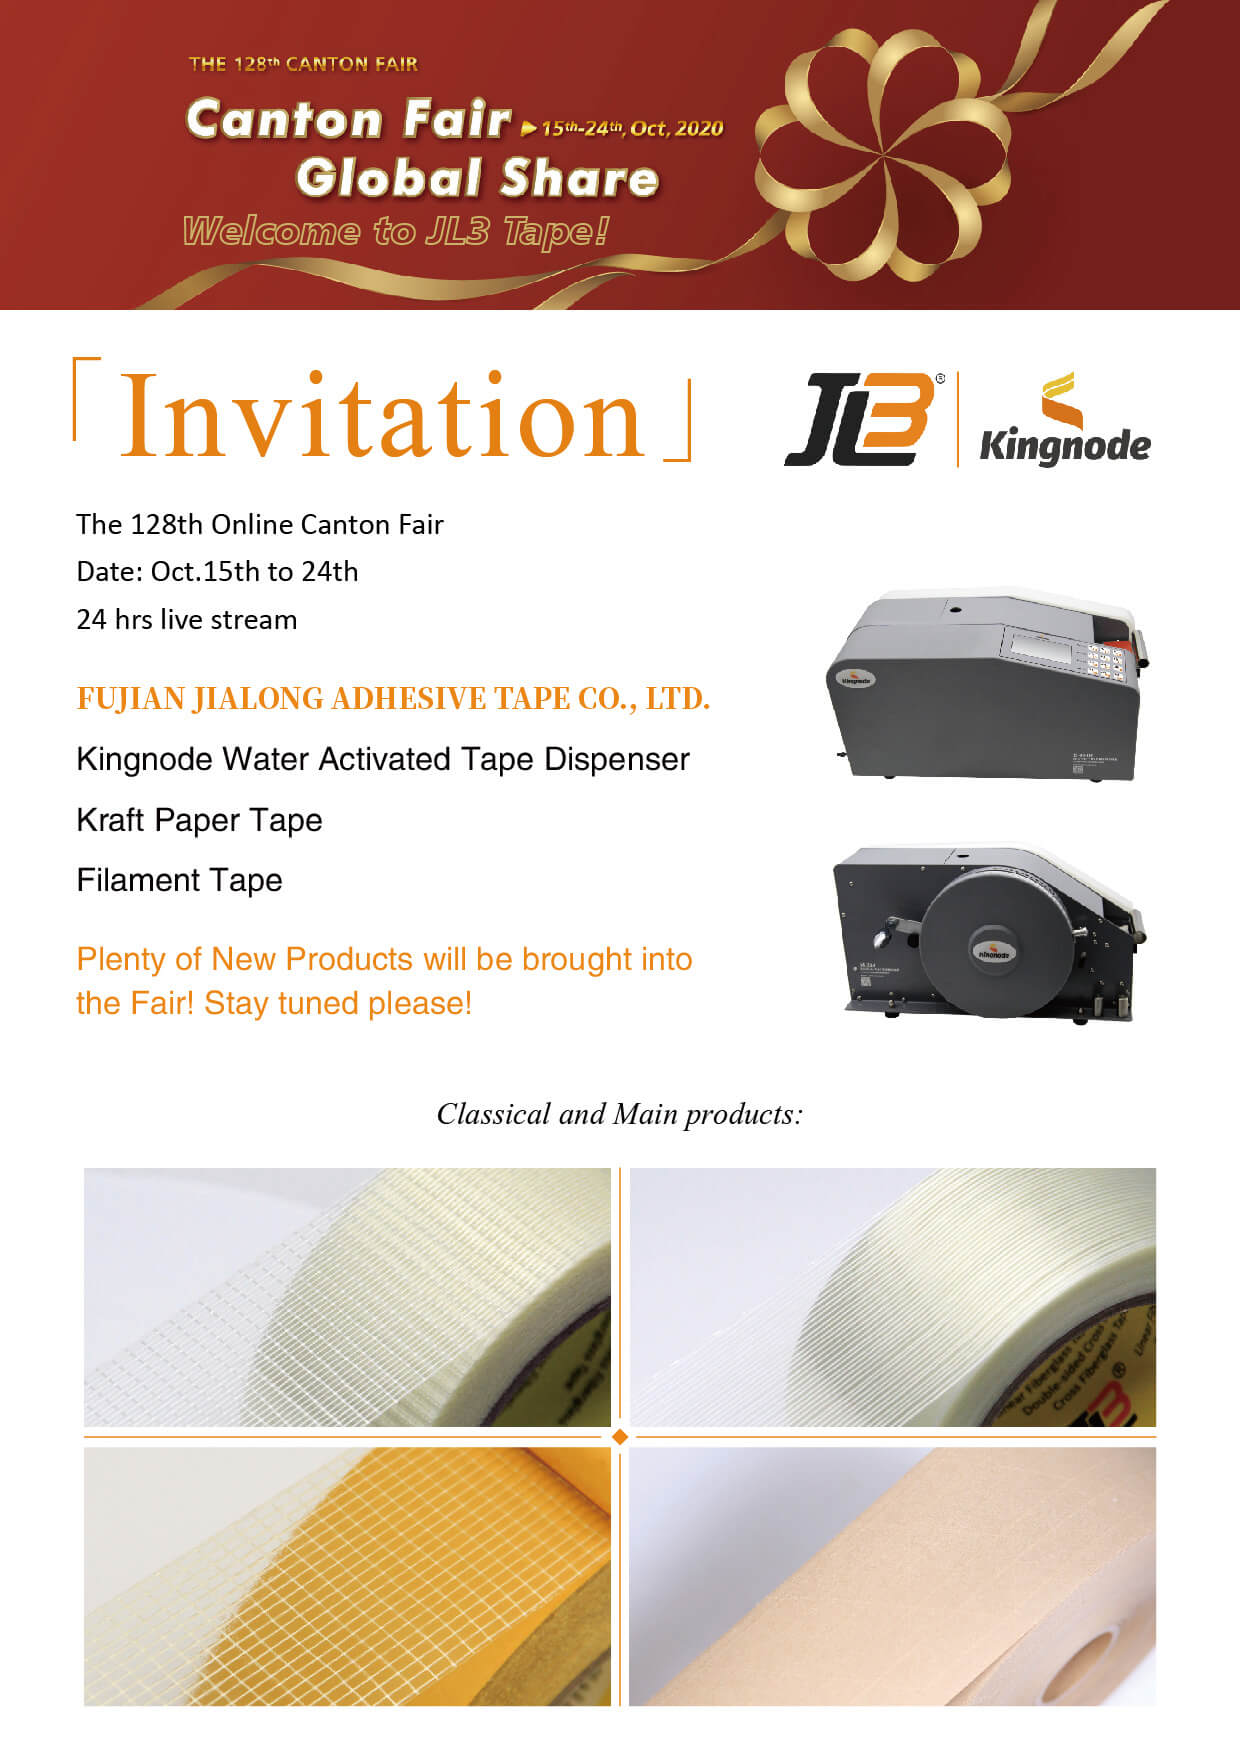 Invitation of the 128th Canton Fair from JL3 Tape